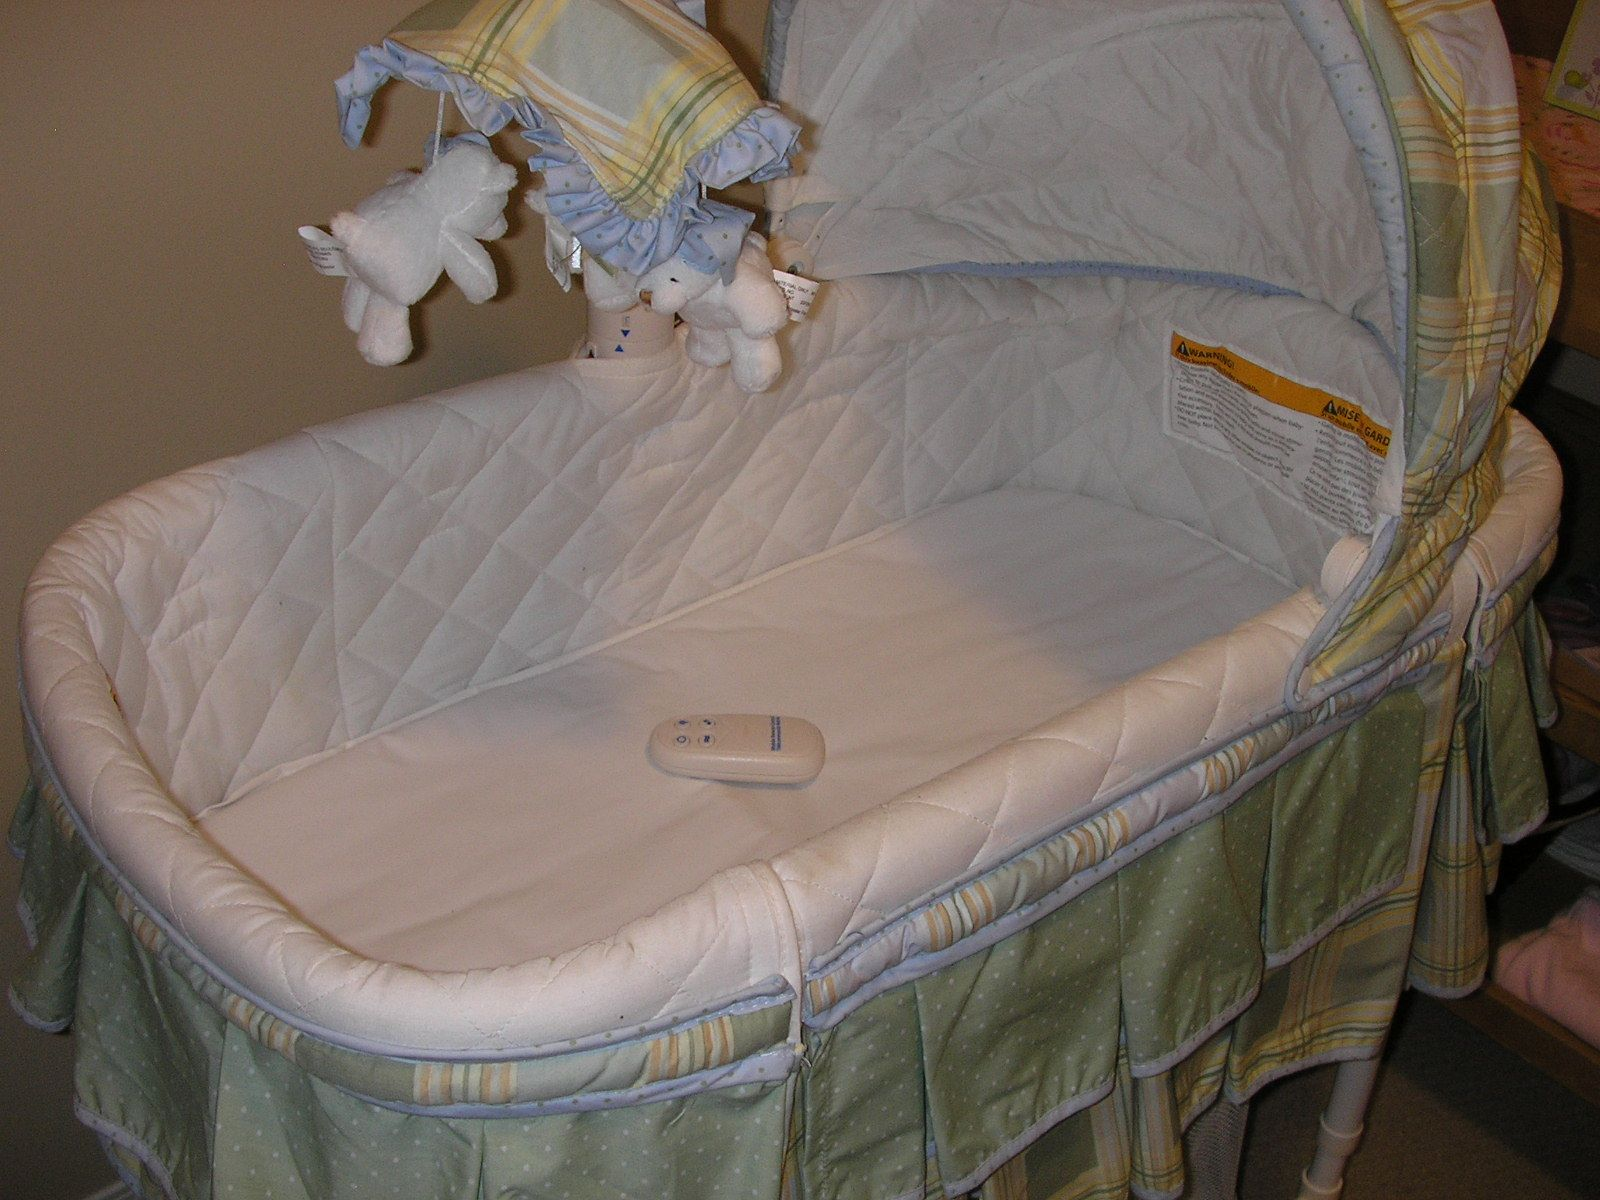 Used crib for sale edmonton - Baby Bassinet In Lexie S Garage Sale In Edmonton Alberta For 80 00 Beautiful Baby Bassinet